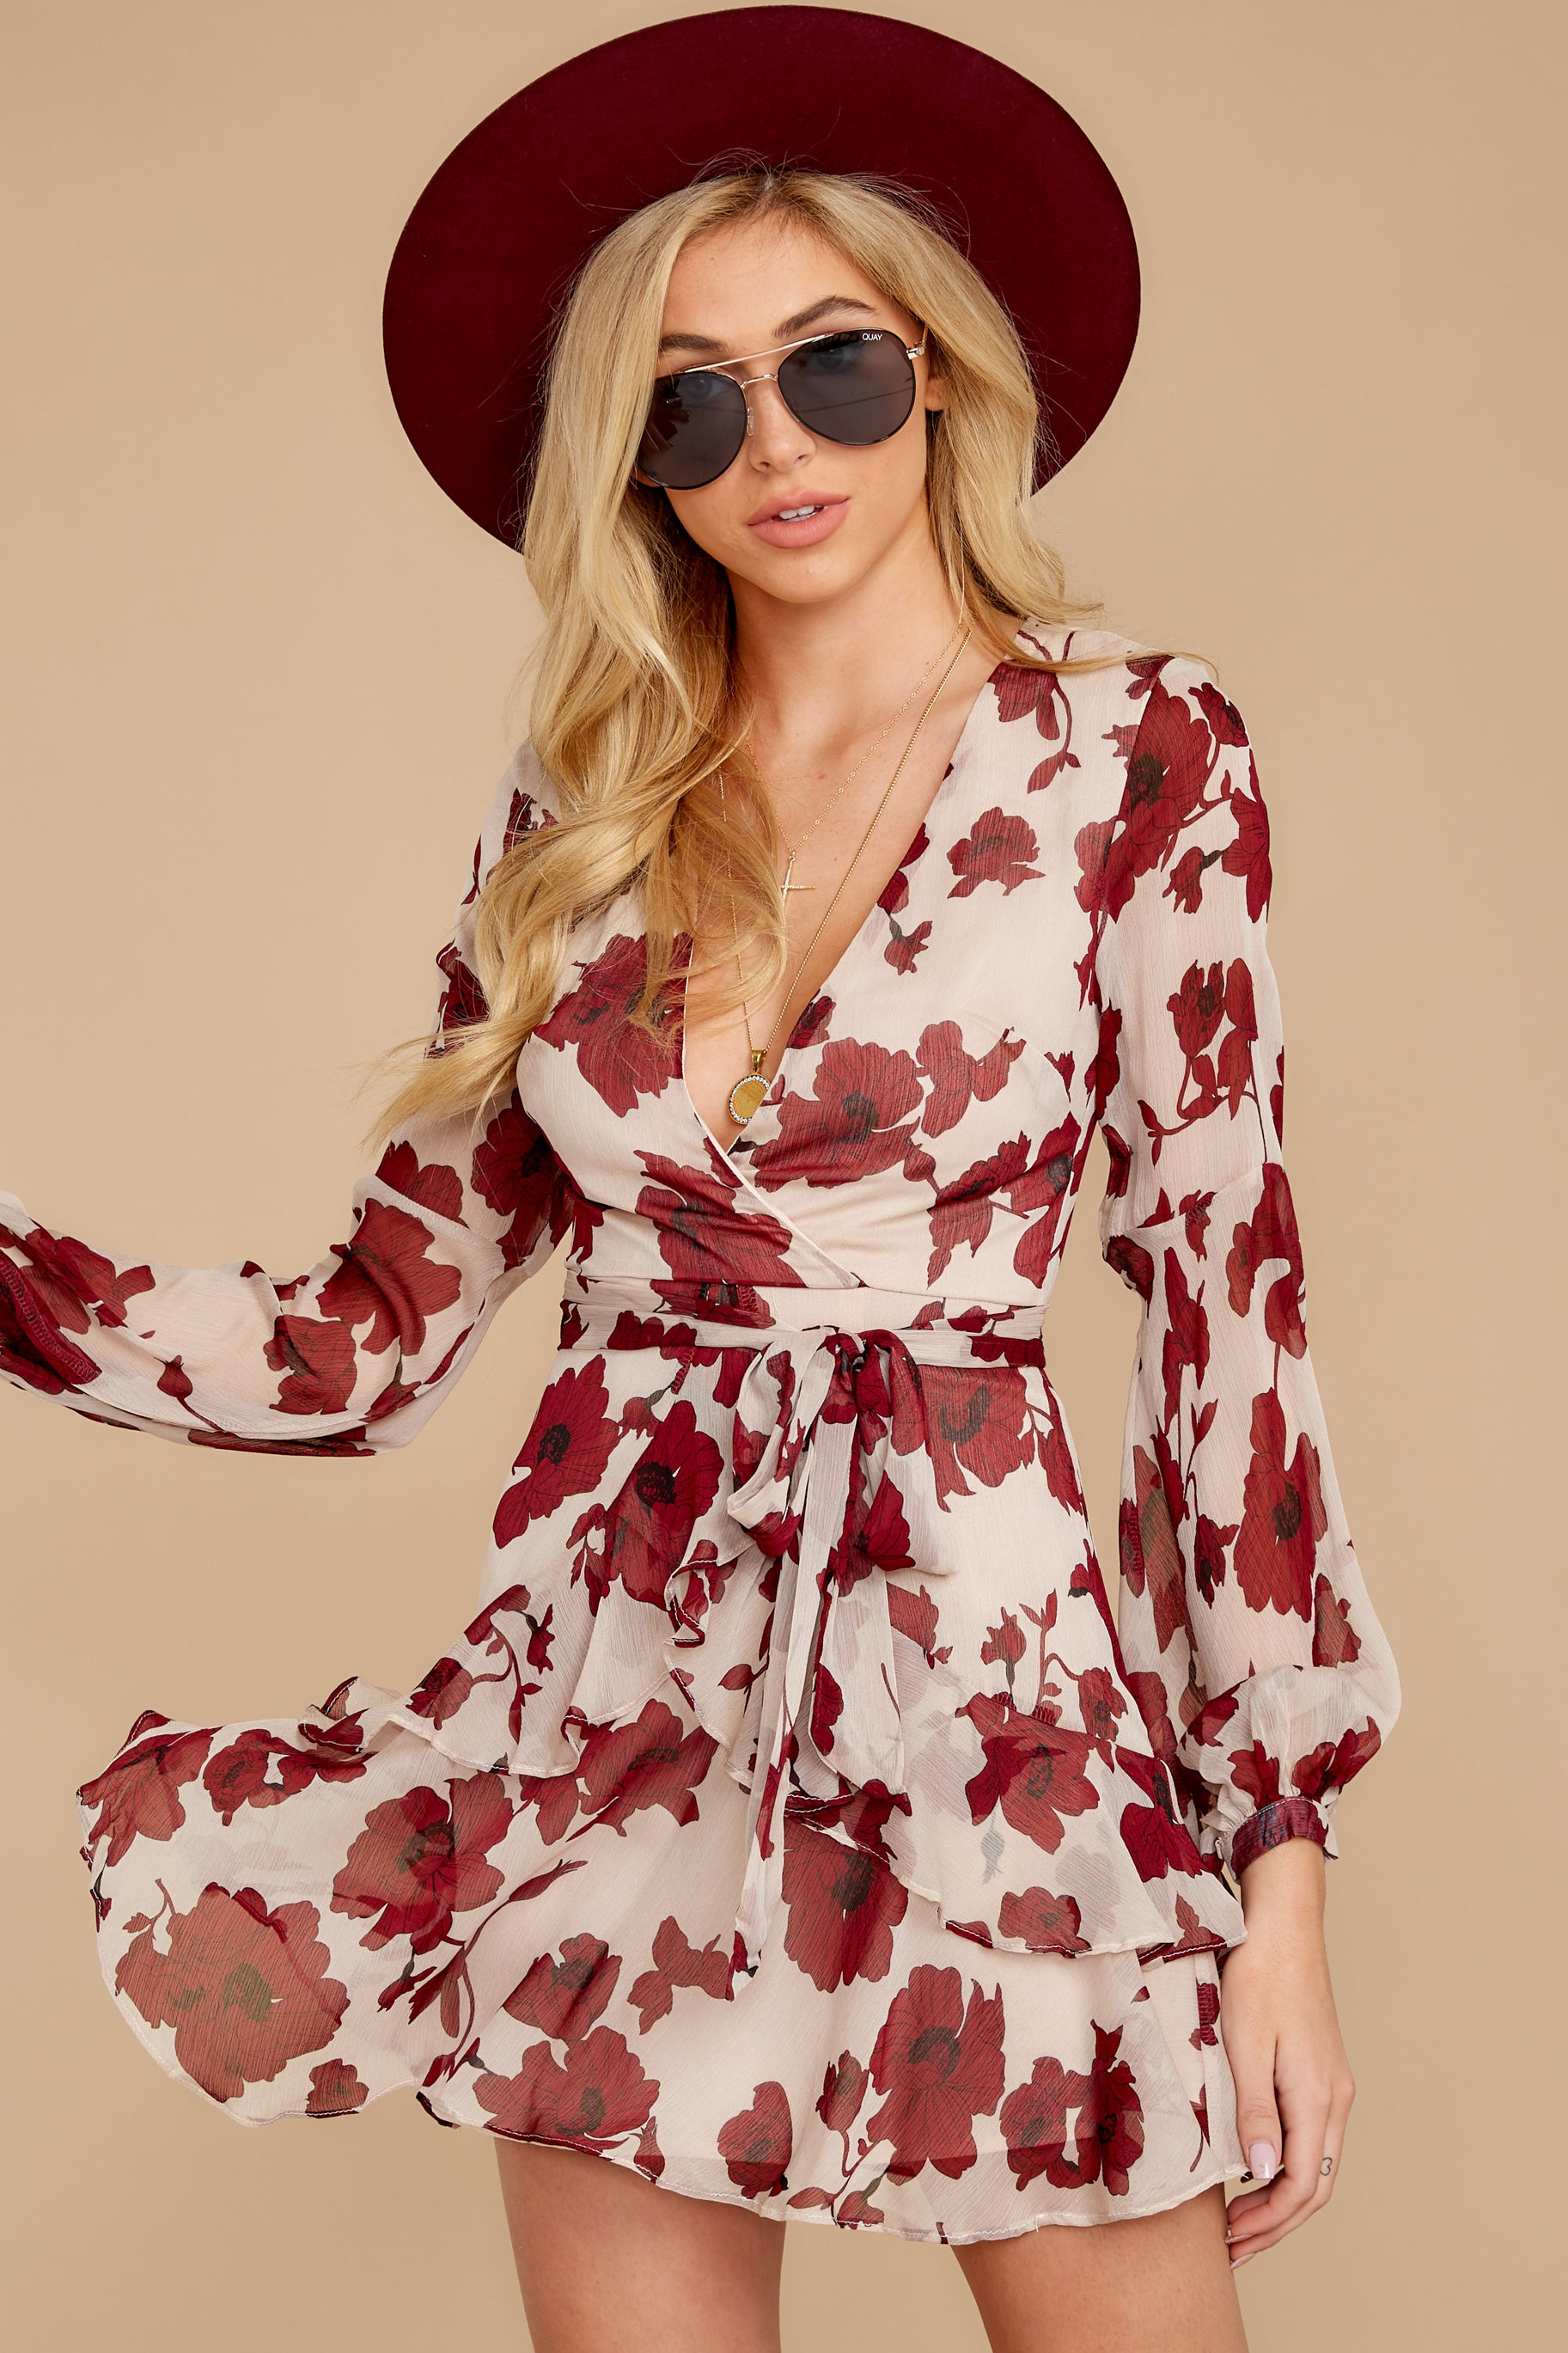 6 Simply Yours Burgundy Floral Print Dress at reddress.com